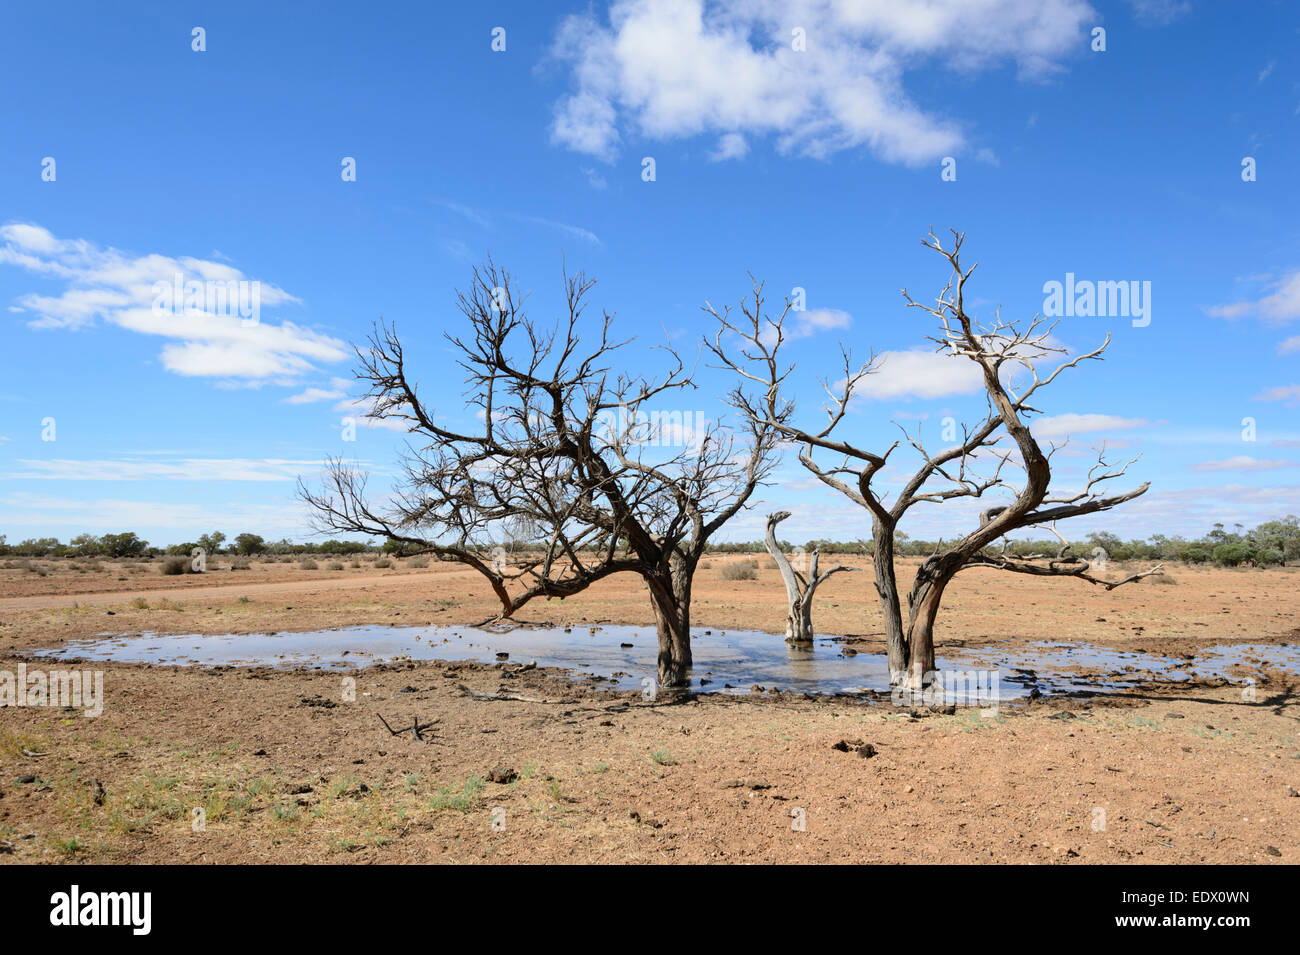 Slimy Watering Hole for Cattle along the Oodnadatta Track, South Australia Stock Photo